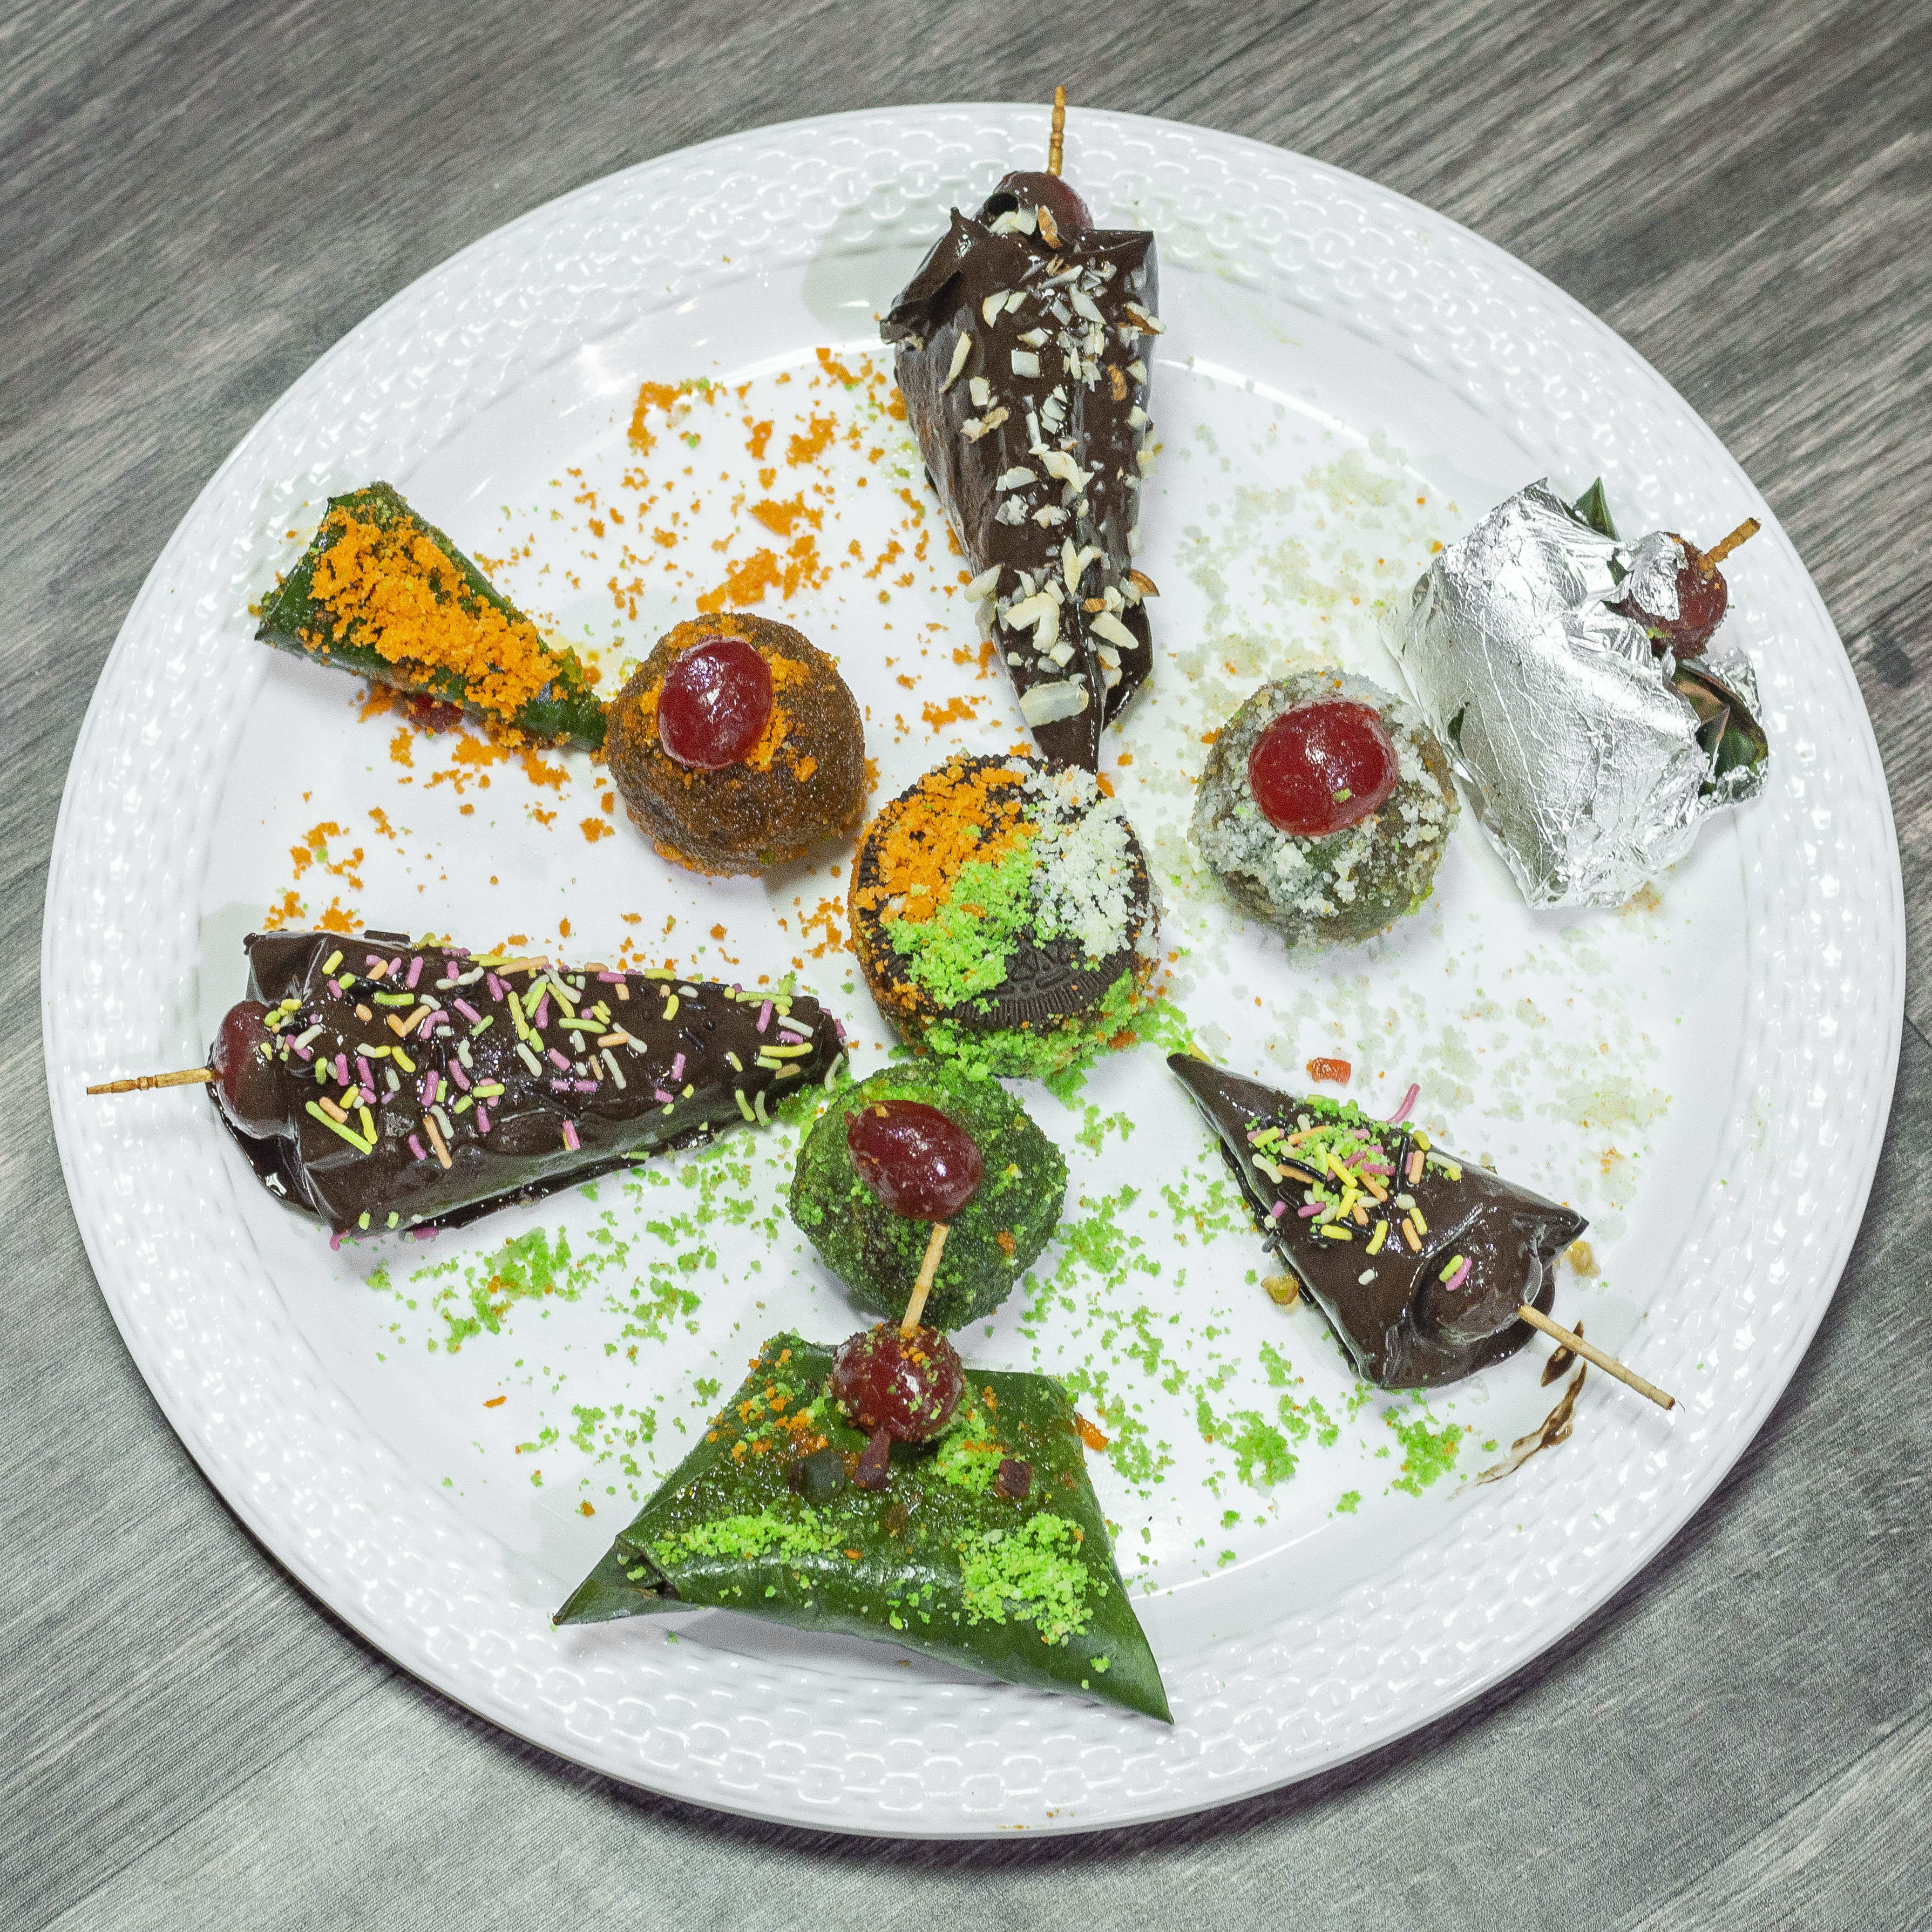 Paan Ingredients|Fire Paan|Chocolate Paan